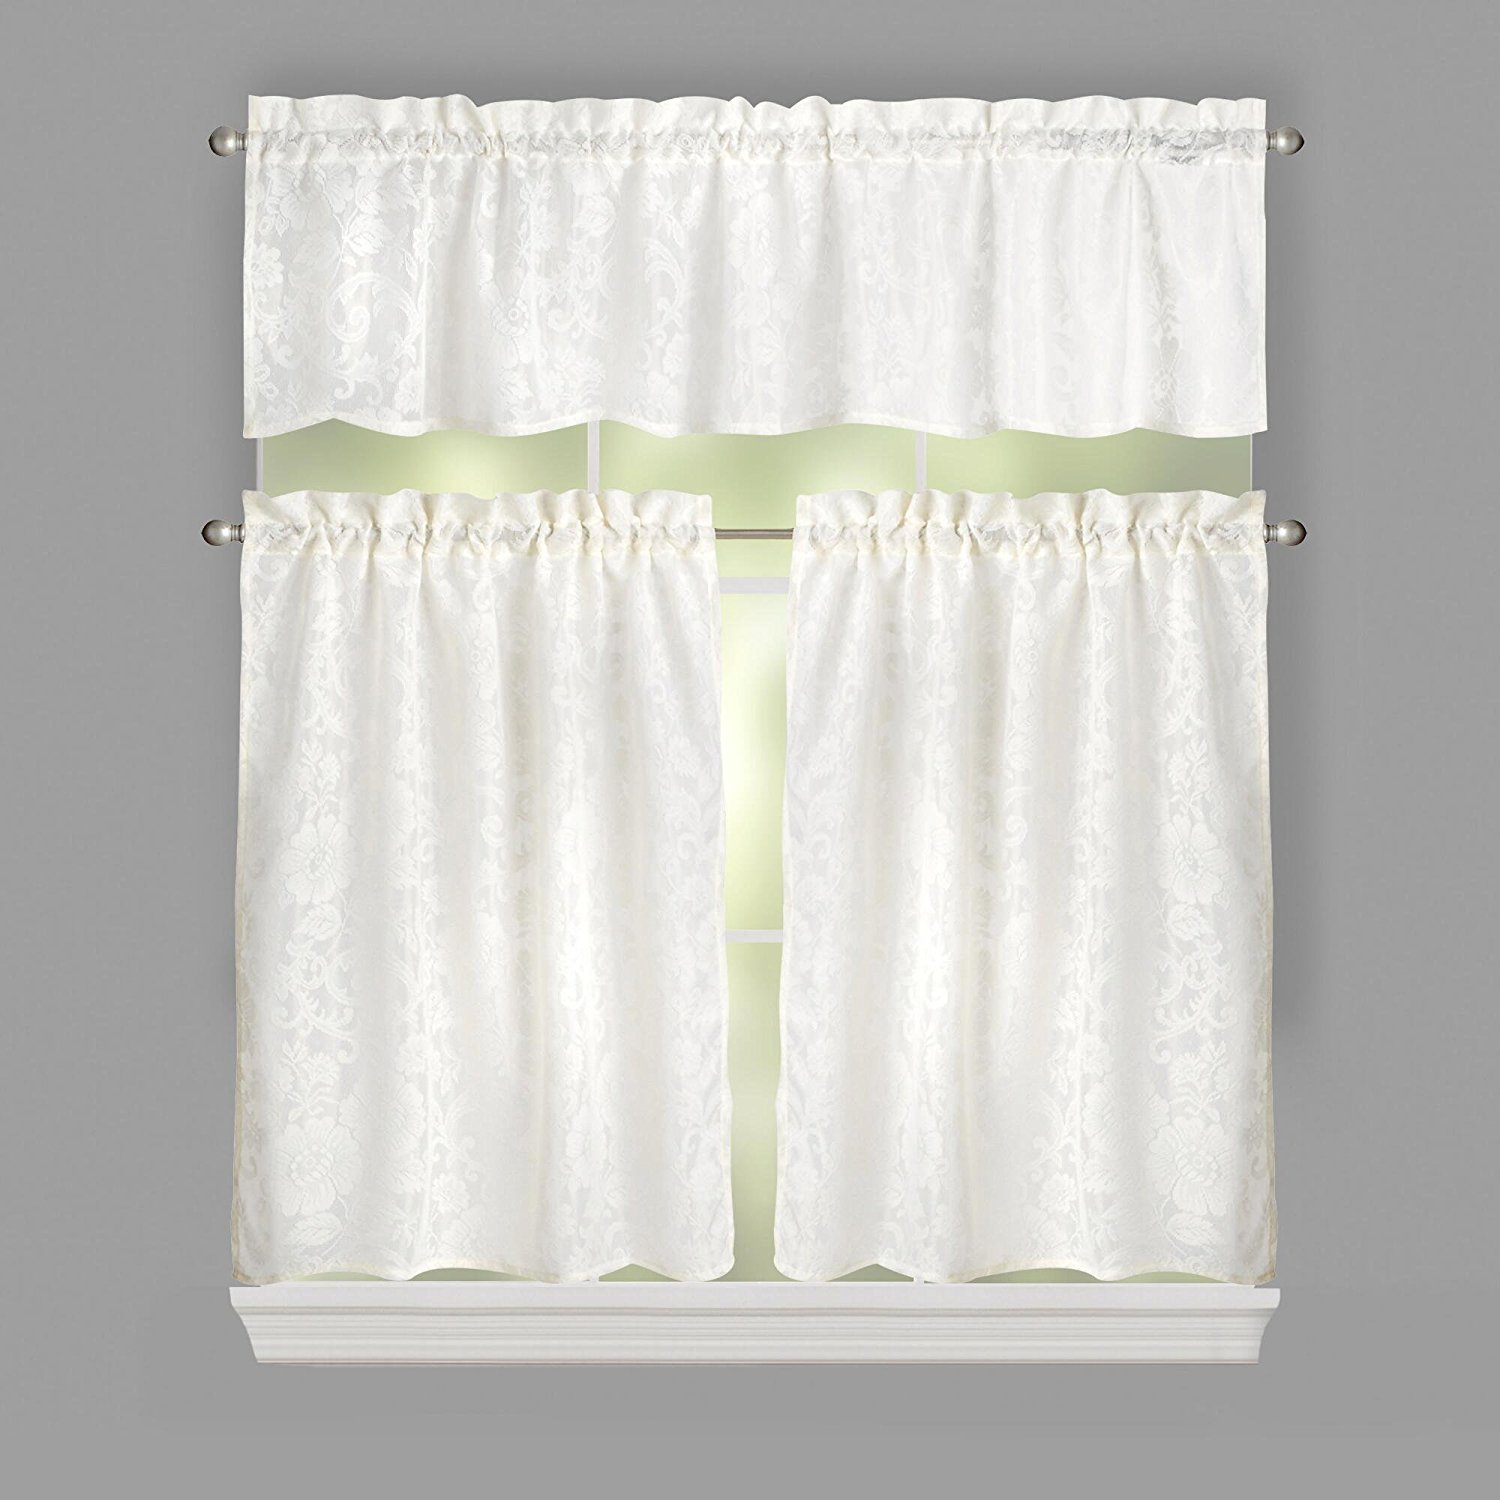 cotton valance store the cafe products in white tuscany classic knotted natural co mpl hand quality val and lace valances curtains caf linens fibre rose